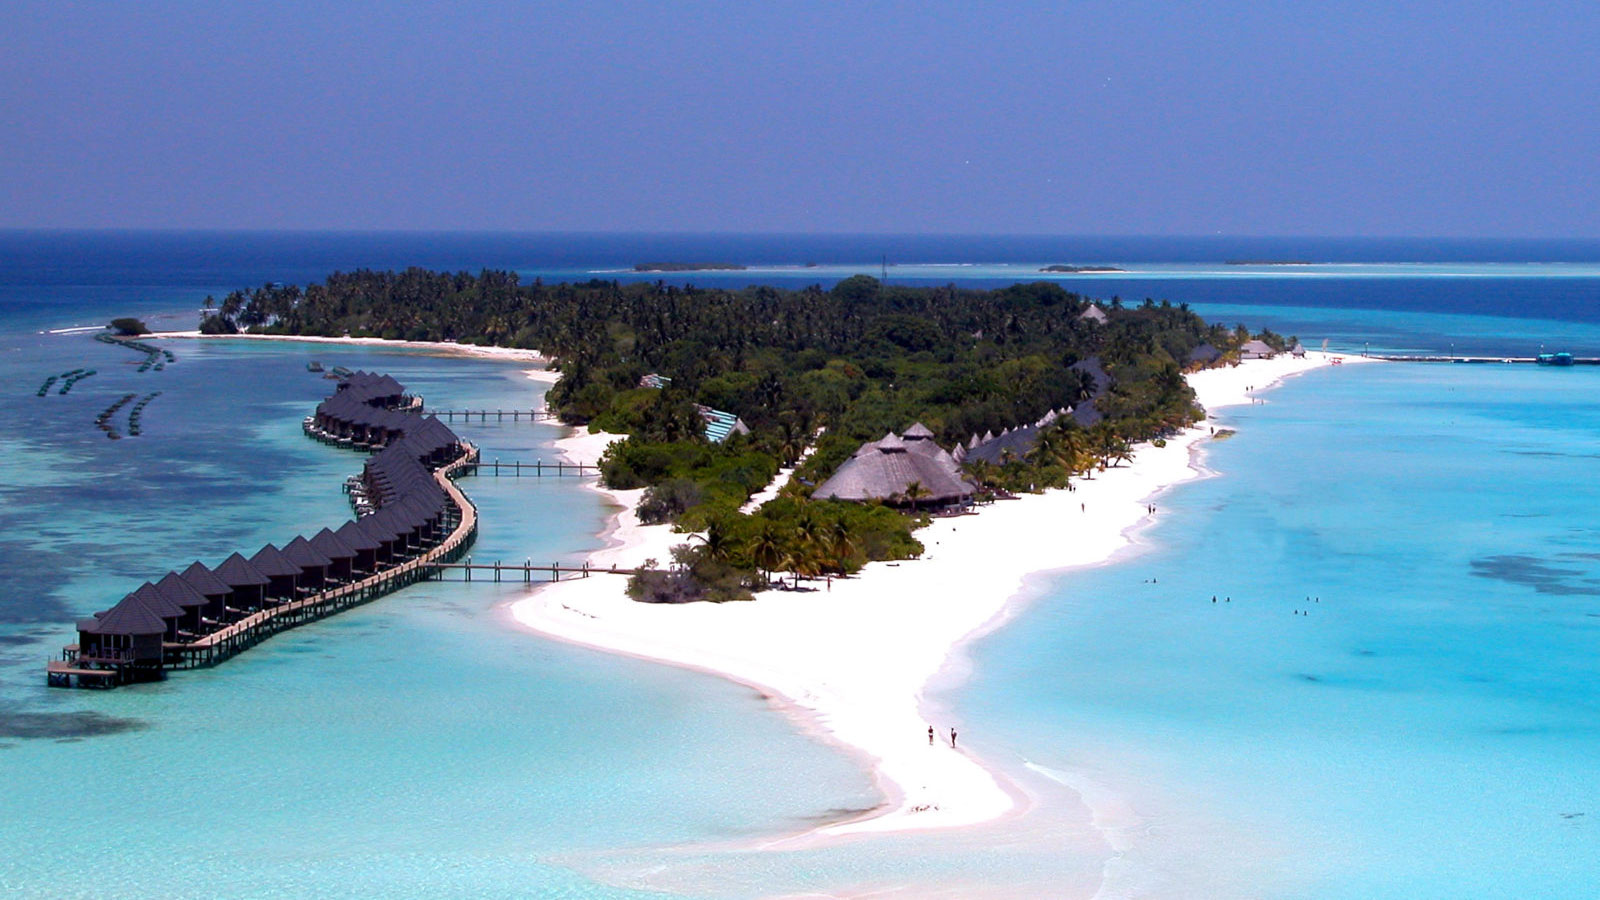 Hundreds of tourists have been stranded in the Maldives because of the coronavirus pandemic. (Kuredu Island Resort via CNN)